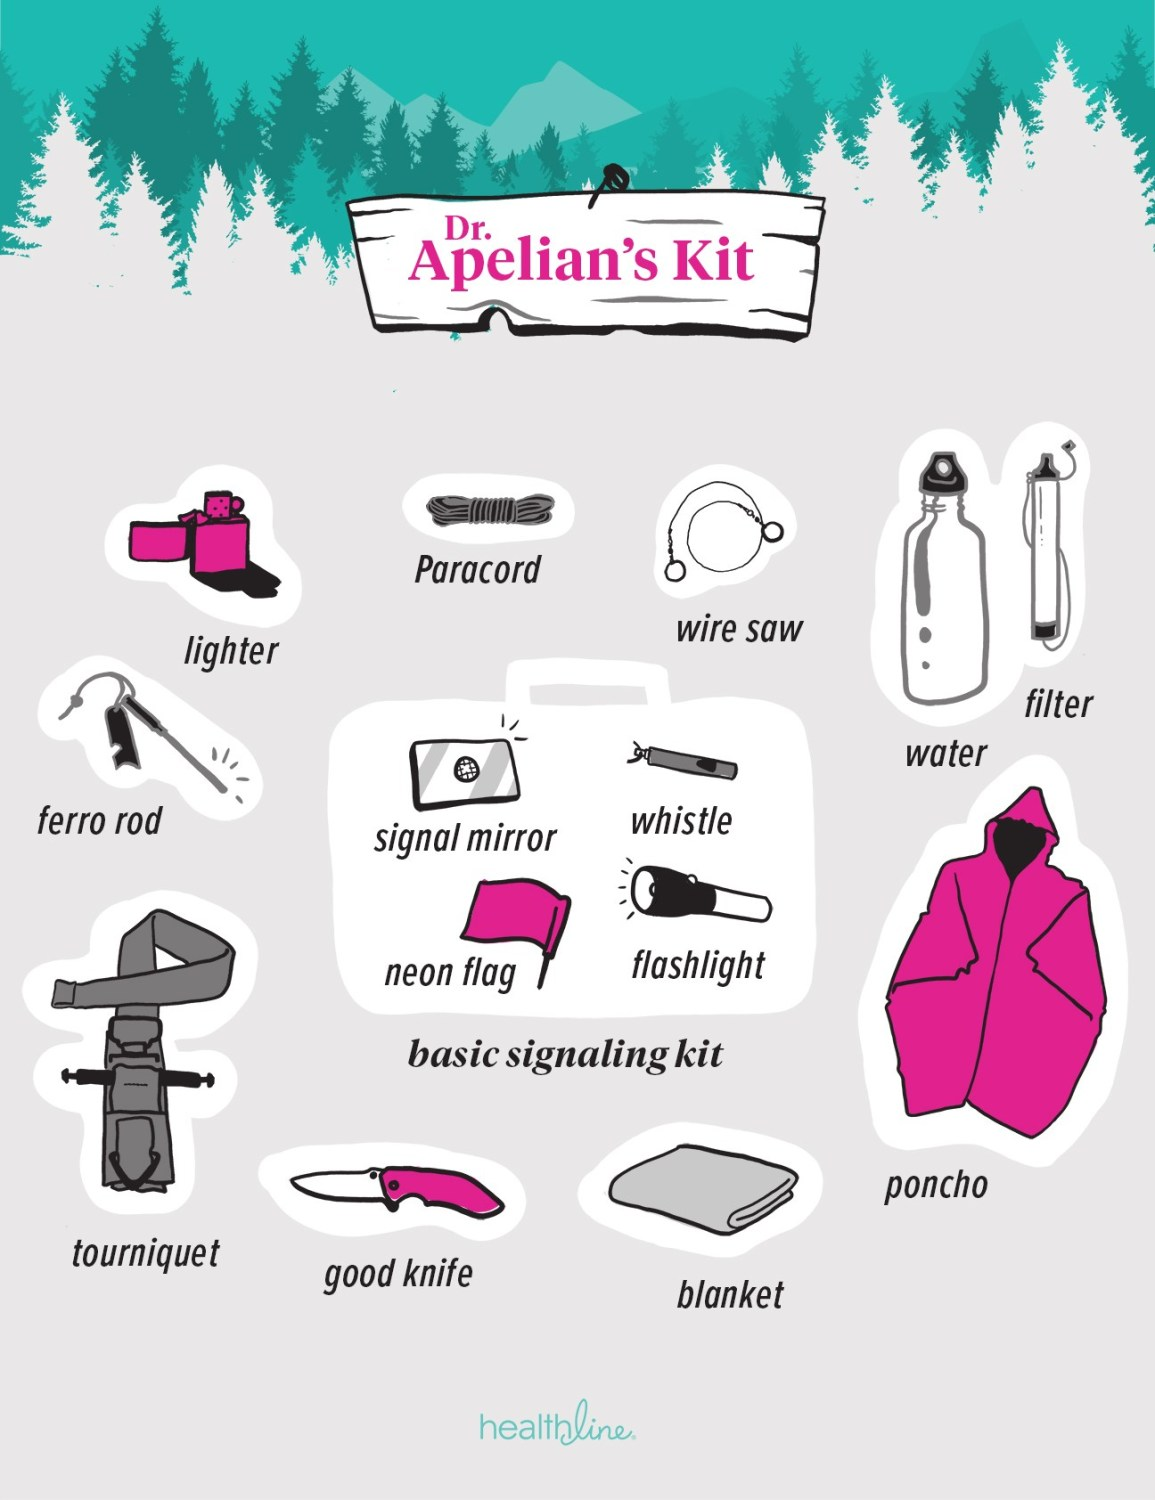 Emergency kits questions answered. Anxiety clipart survival gear